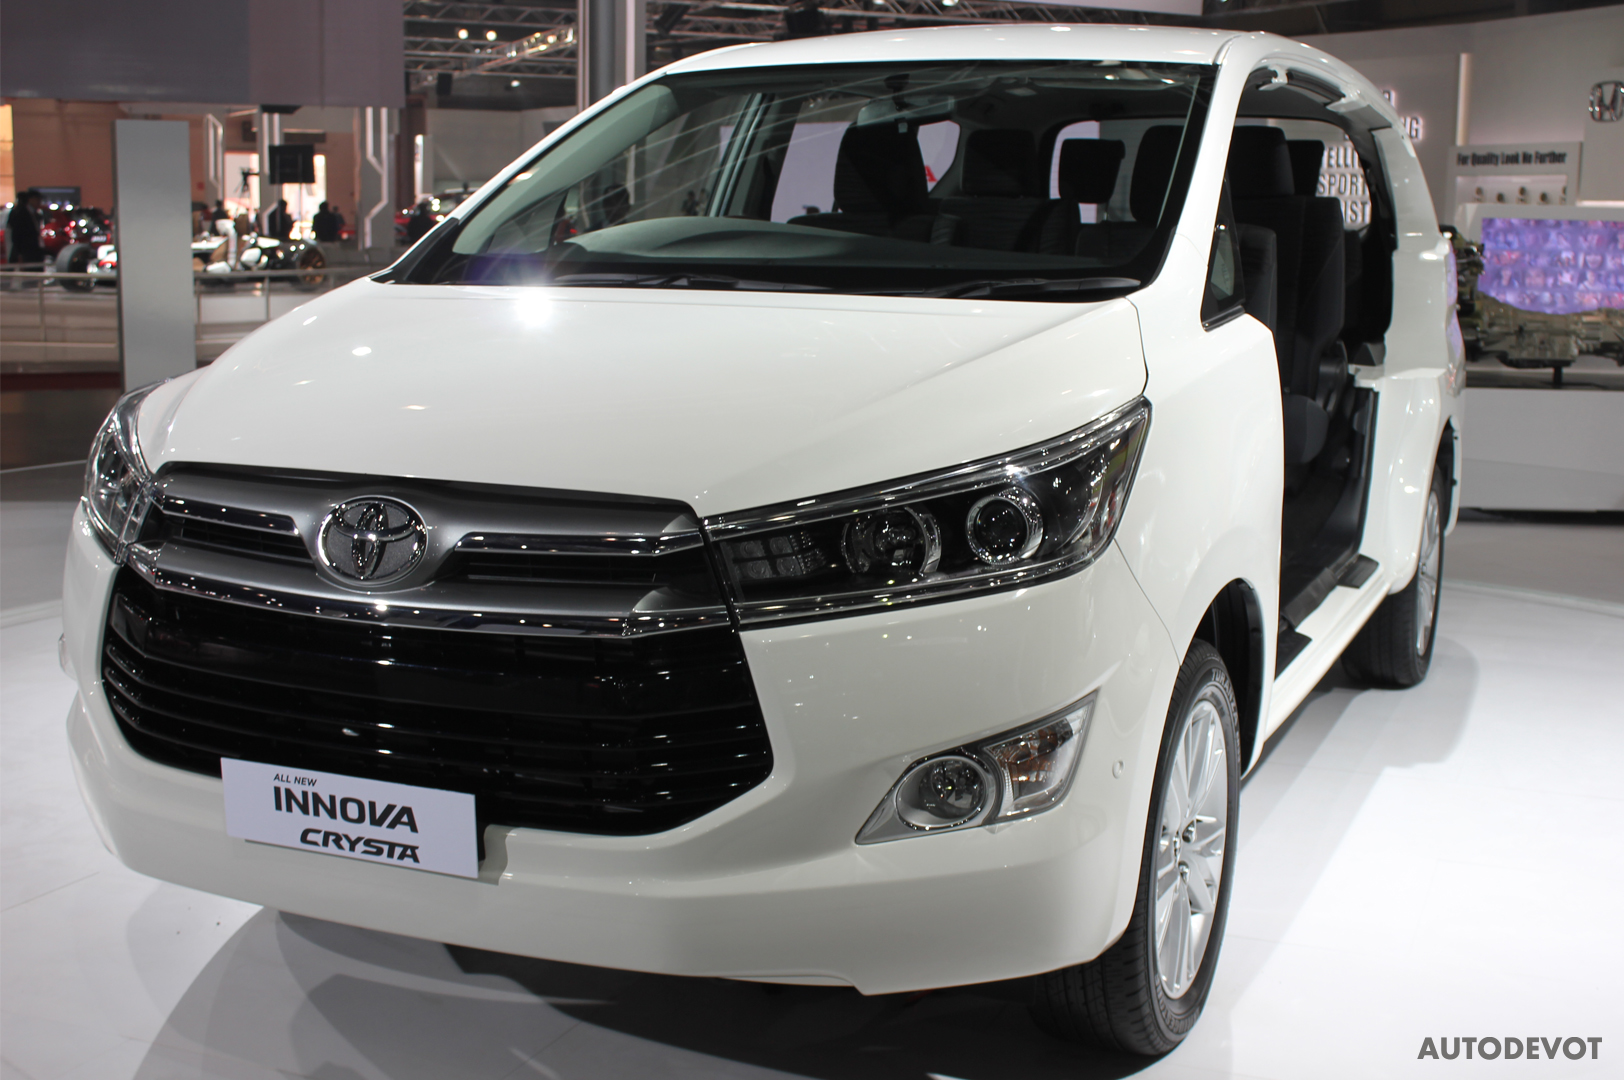 toyota innova crysta petrol to be available soon - autodevot